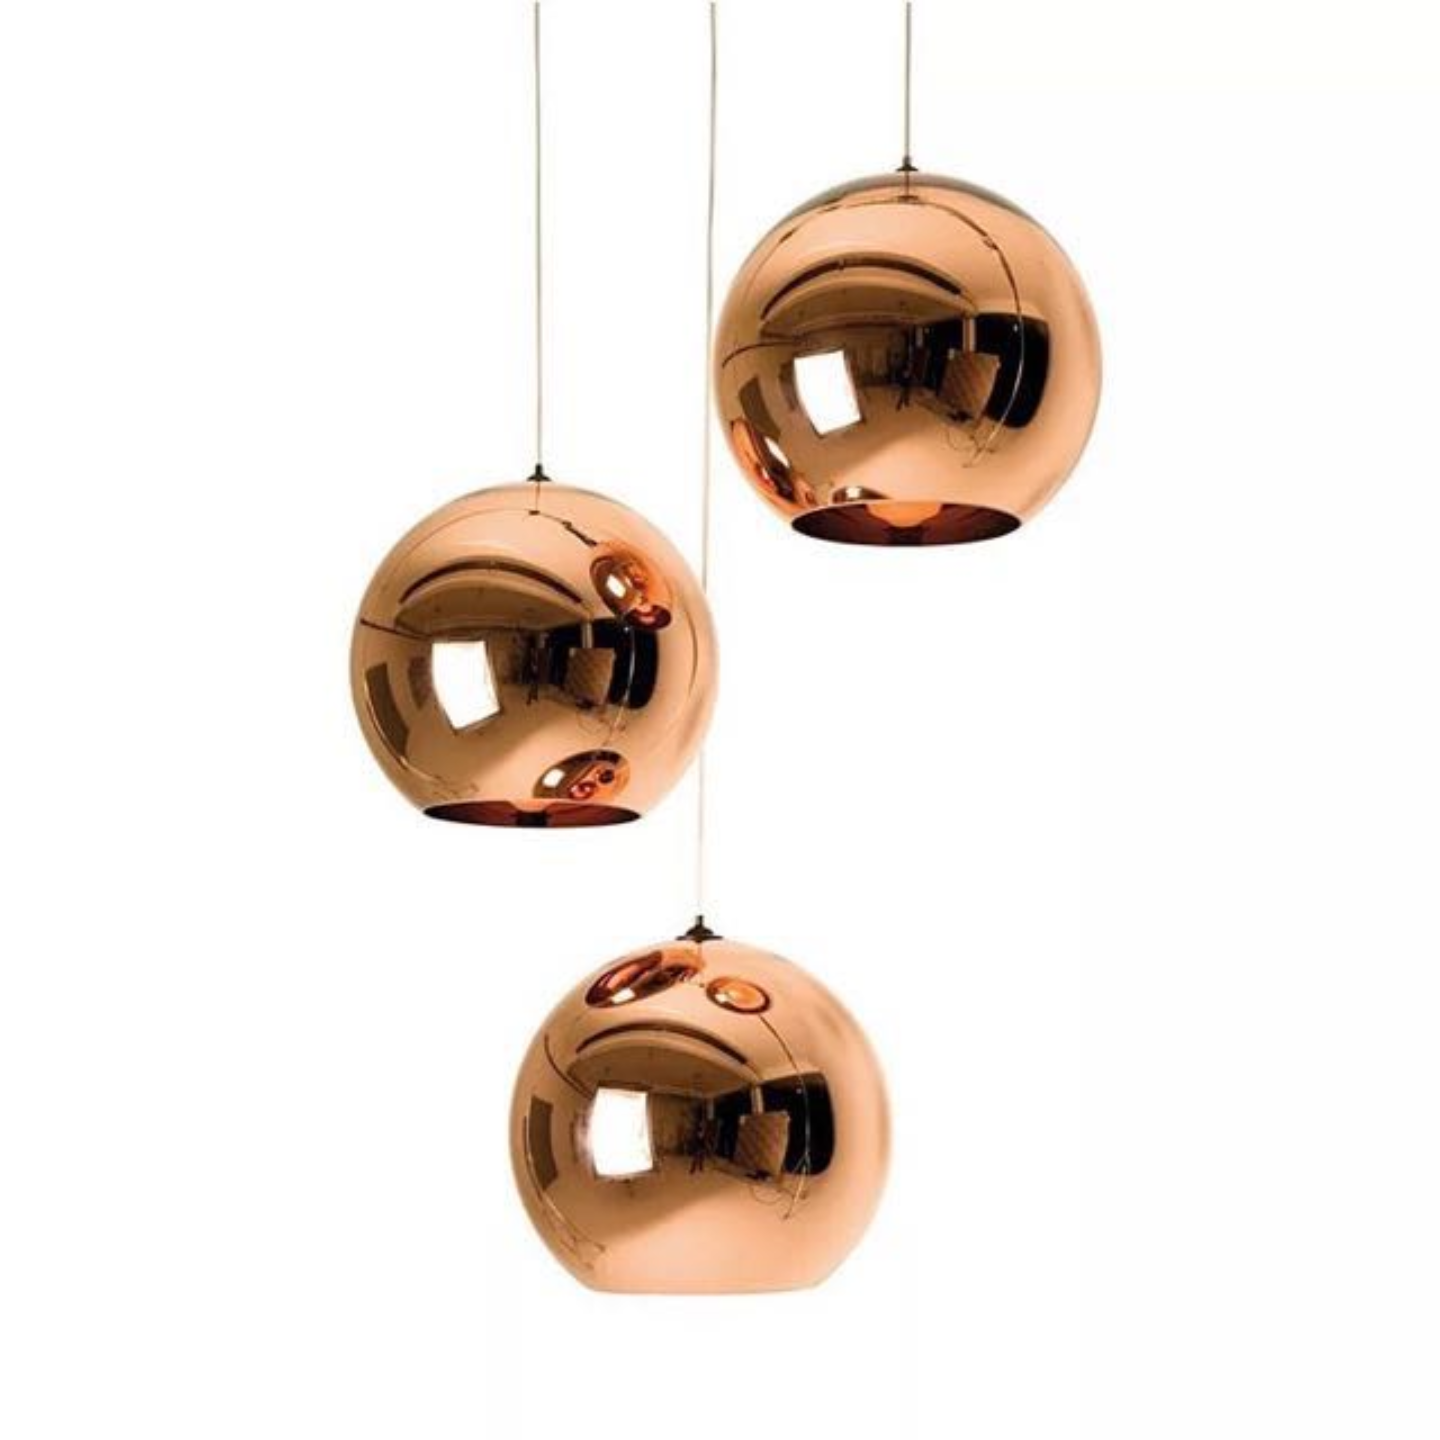 Reflective Globe Pendant Light